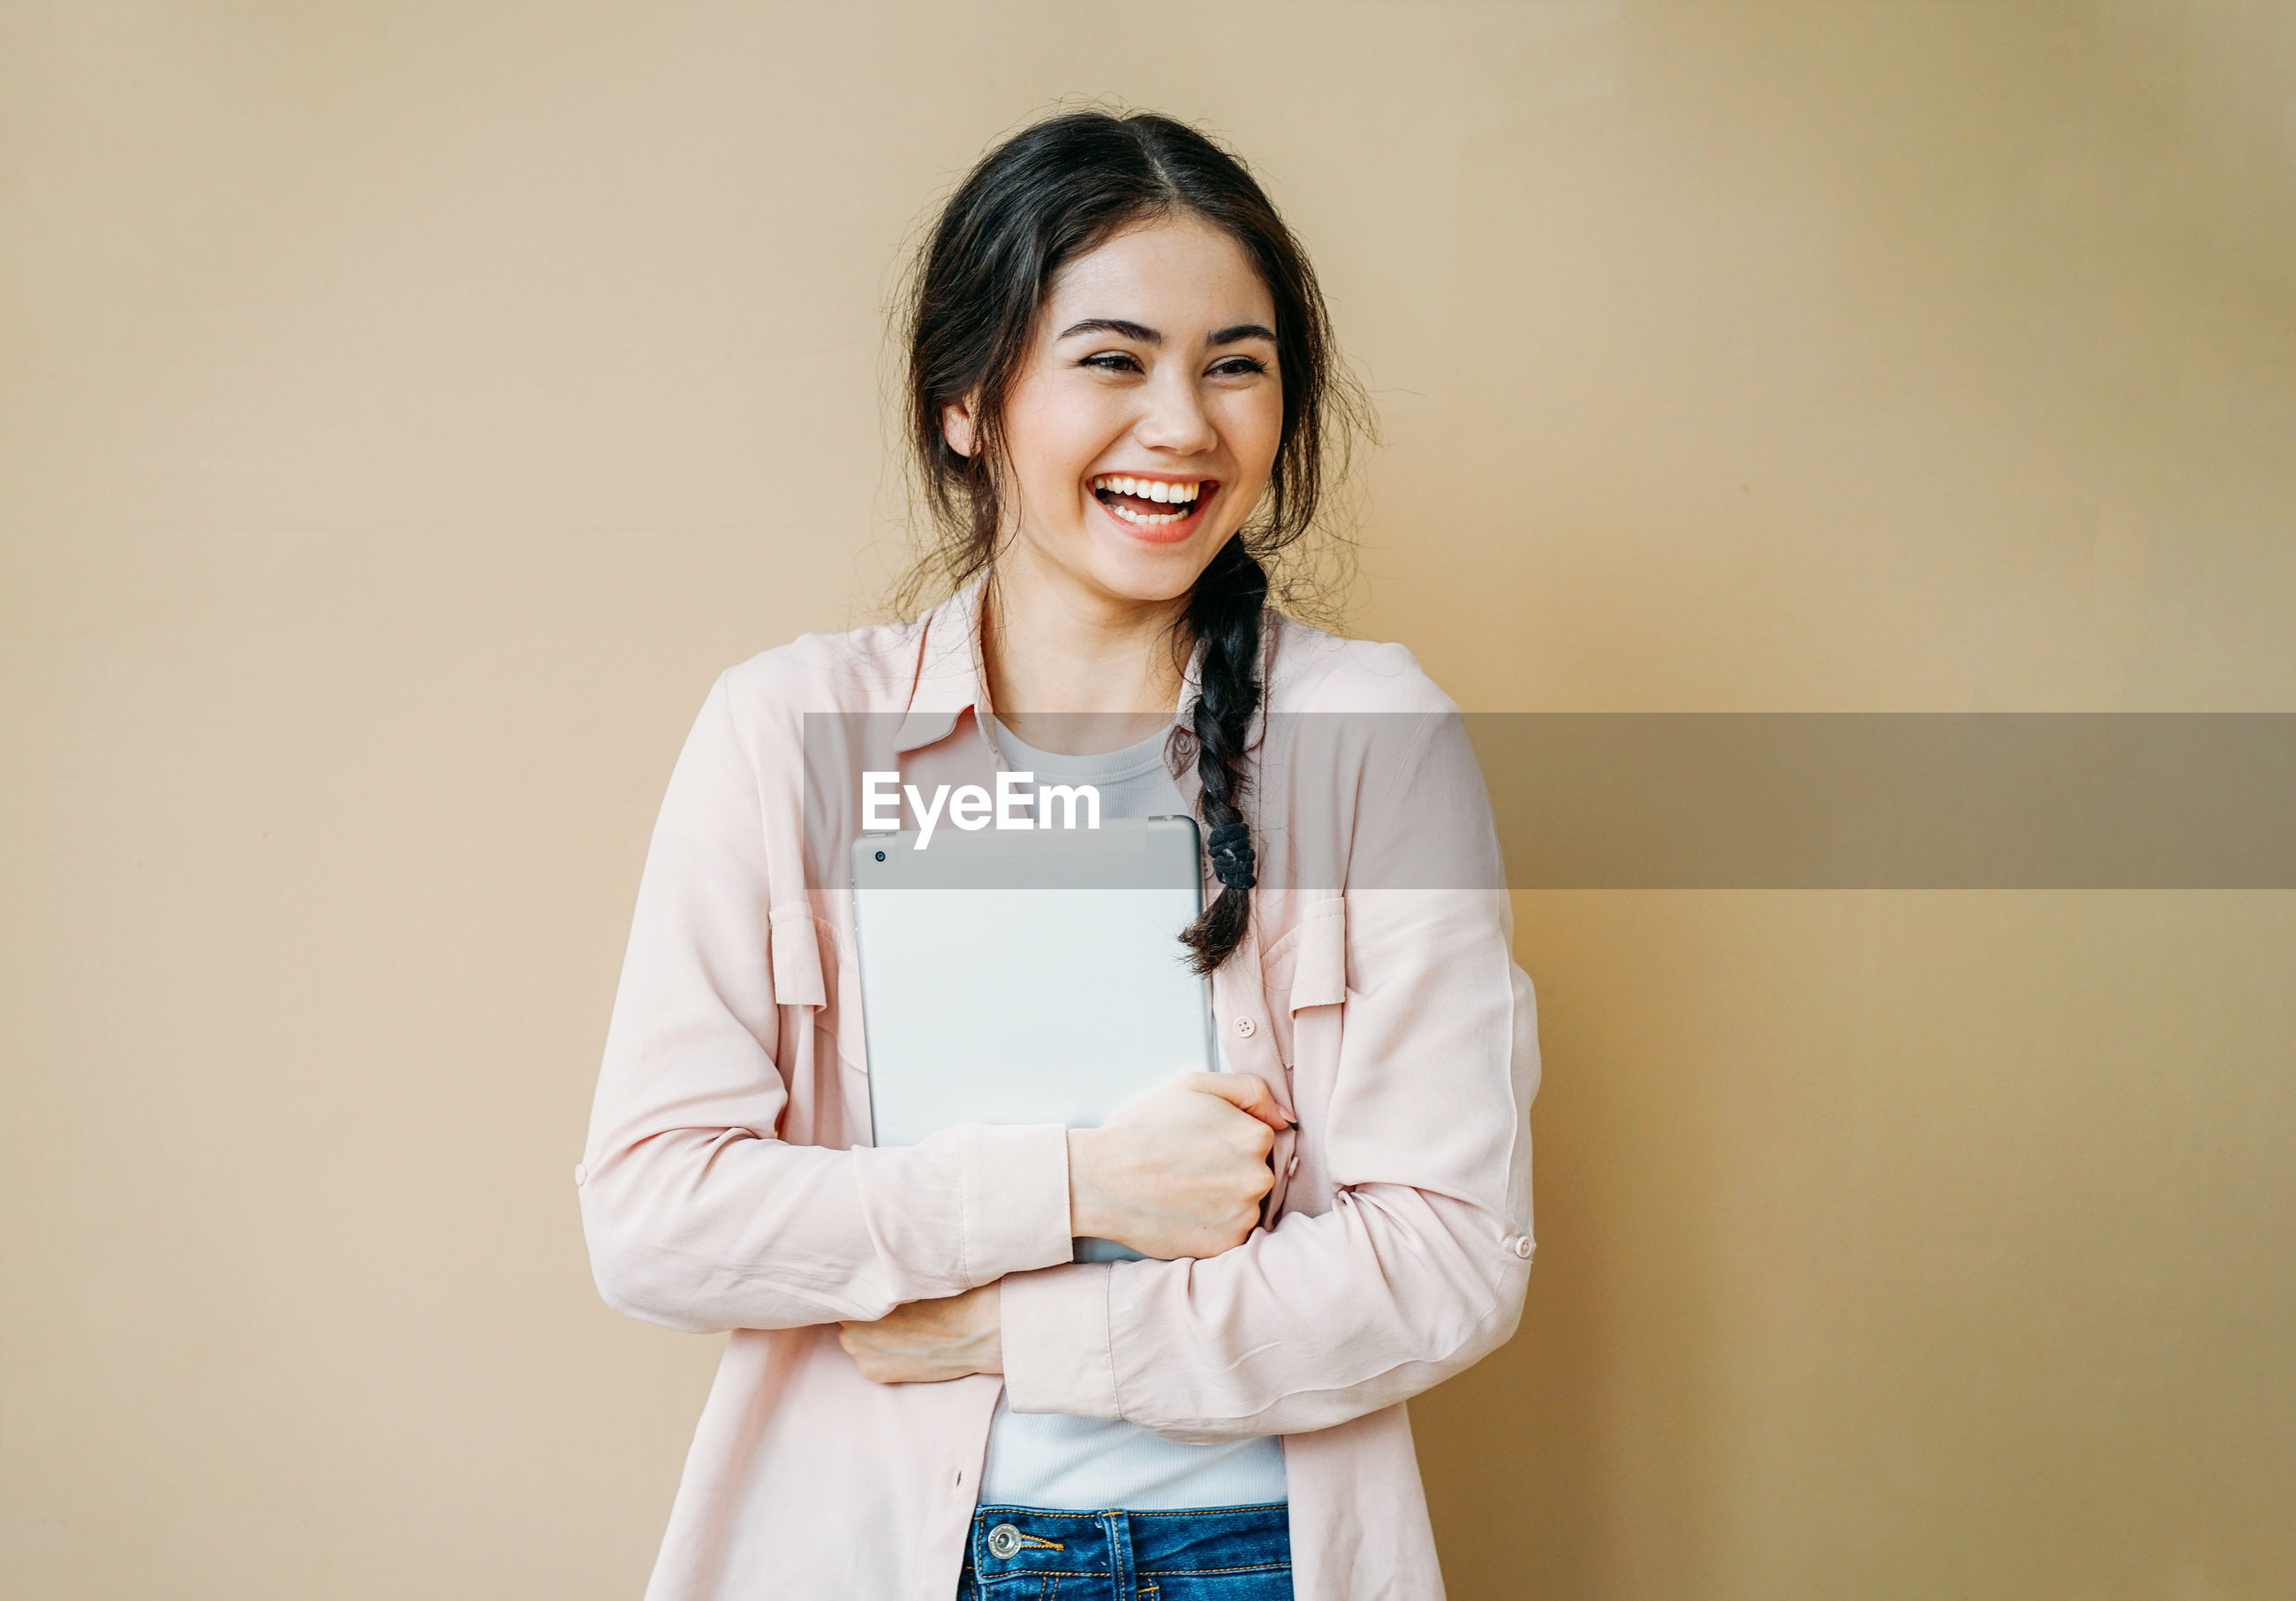 Smiling young woman looking away standing against beige background